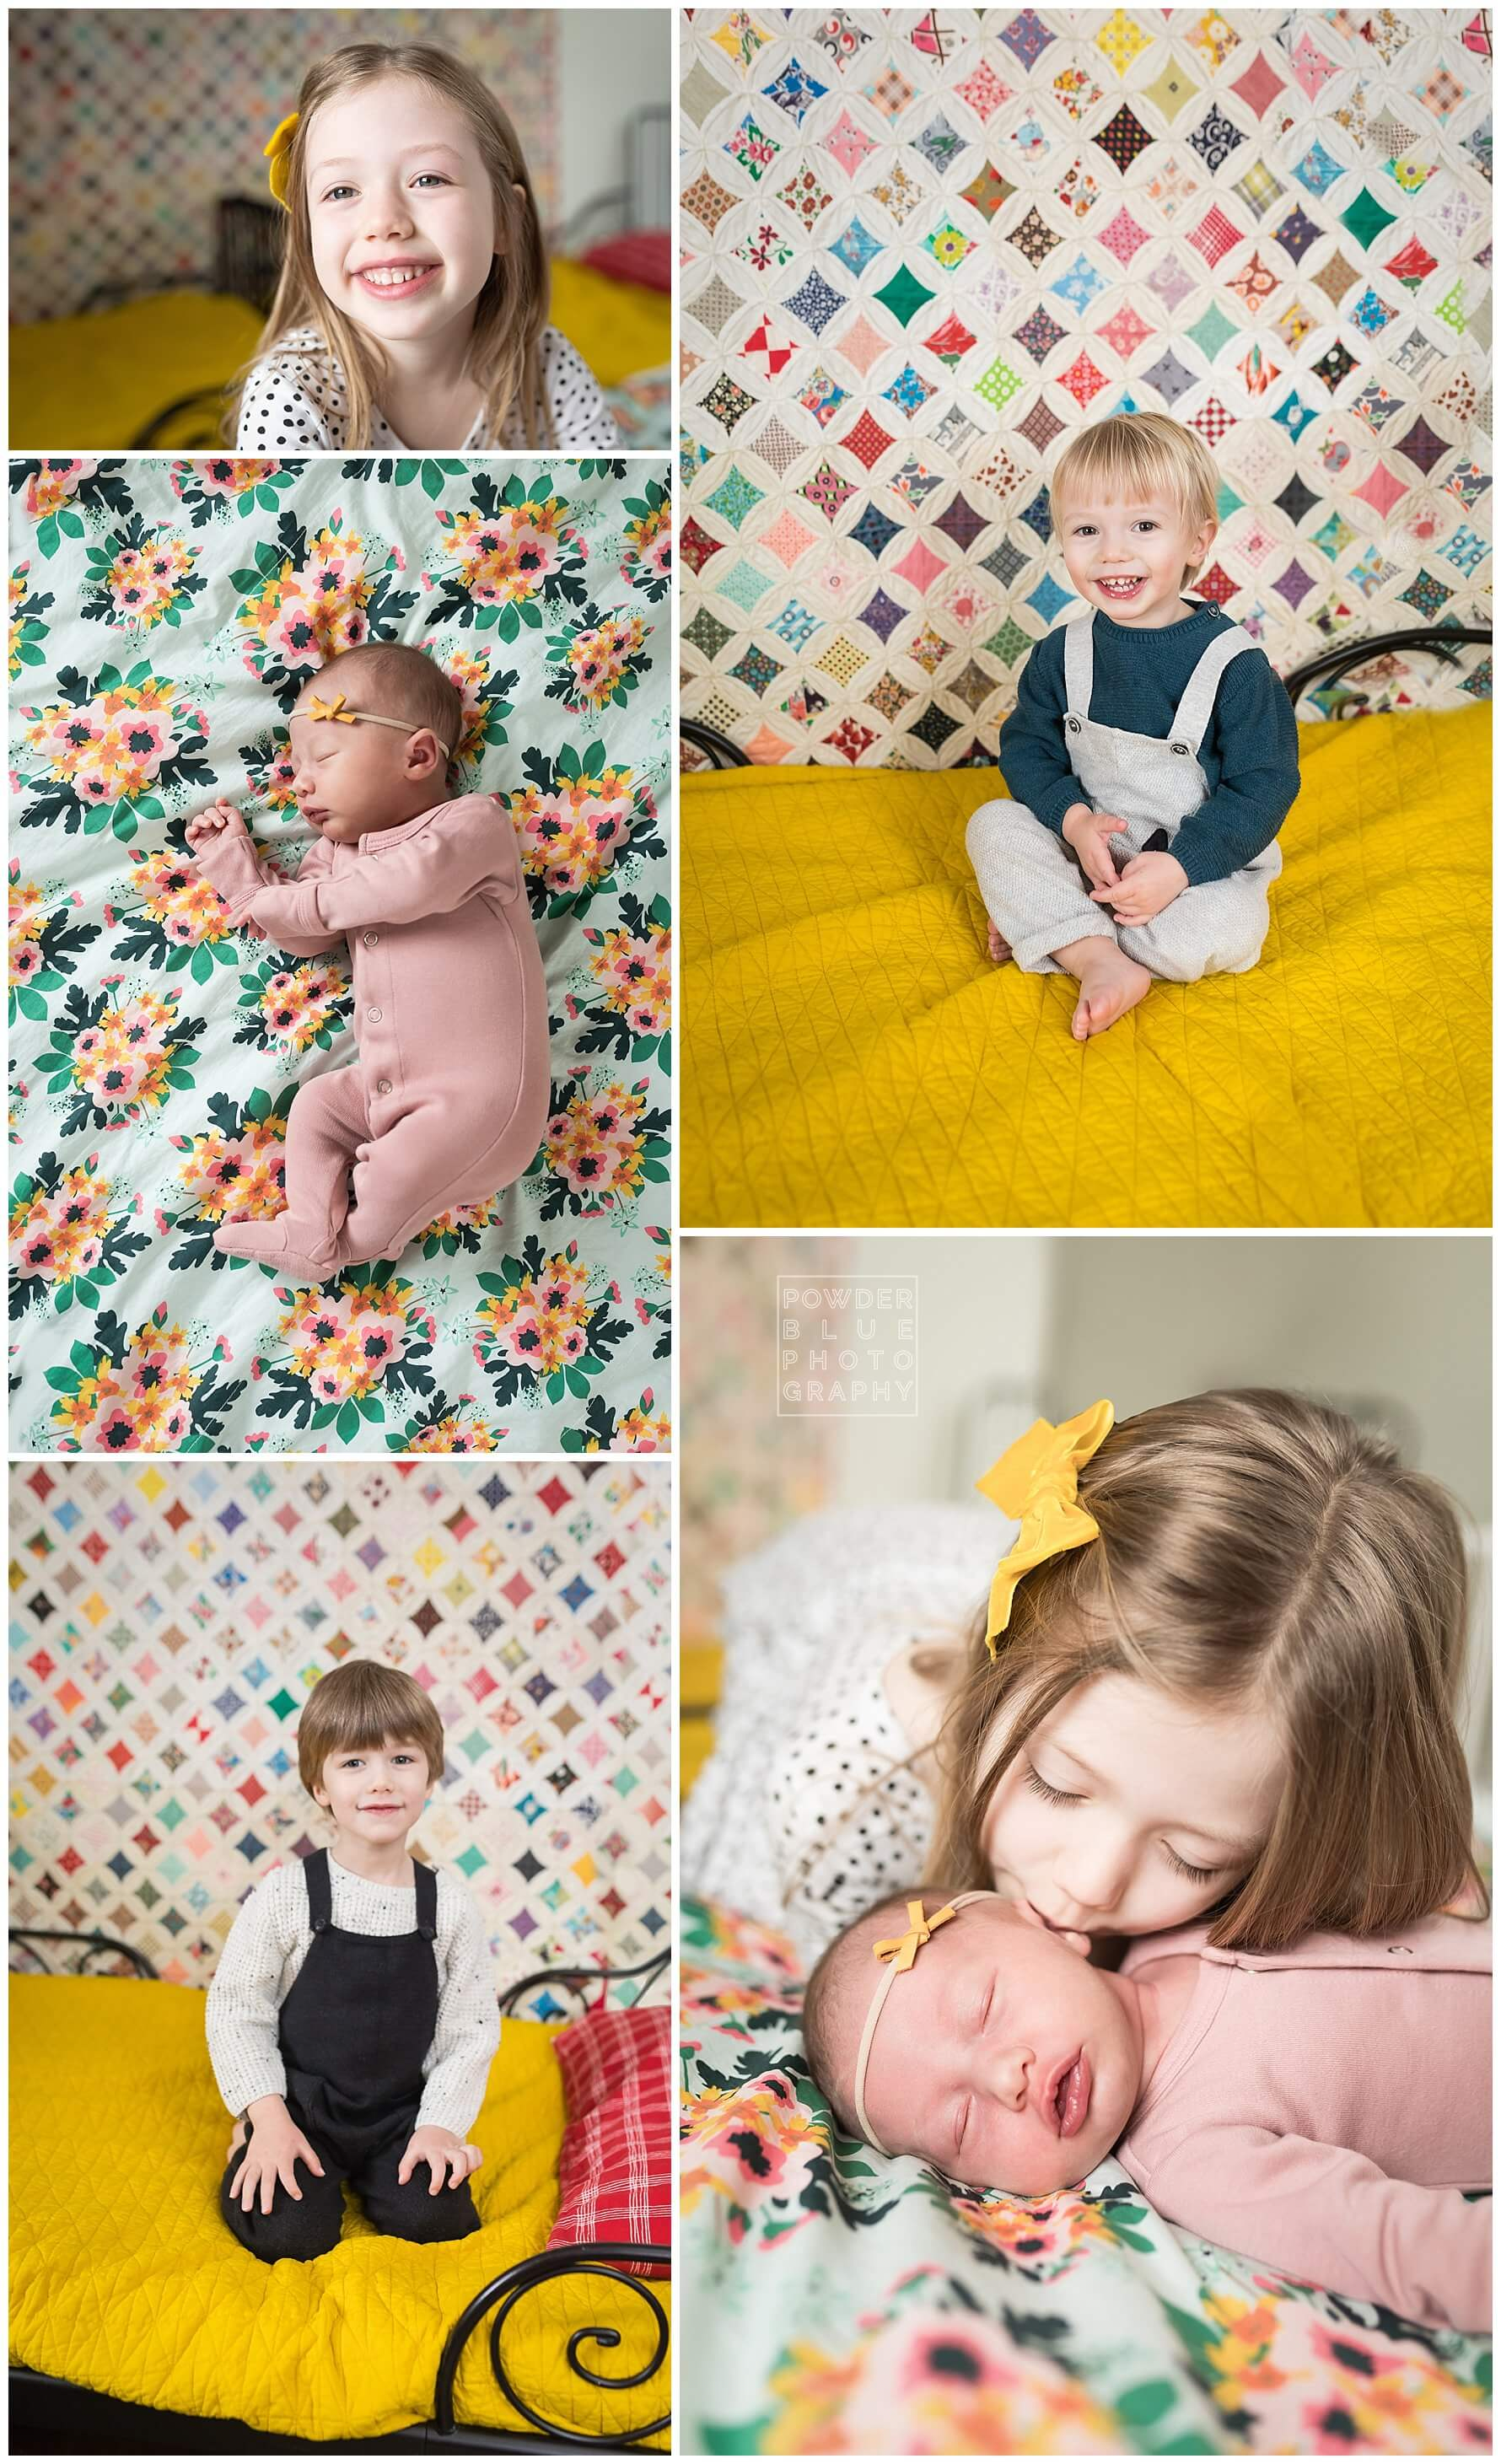 pittsburgh newborn photography session with a lot of color and patterns. rose blanket, mustard blanket.